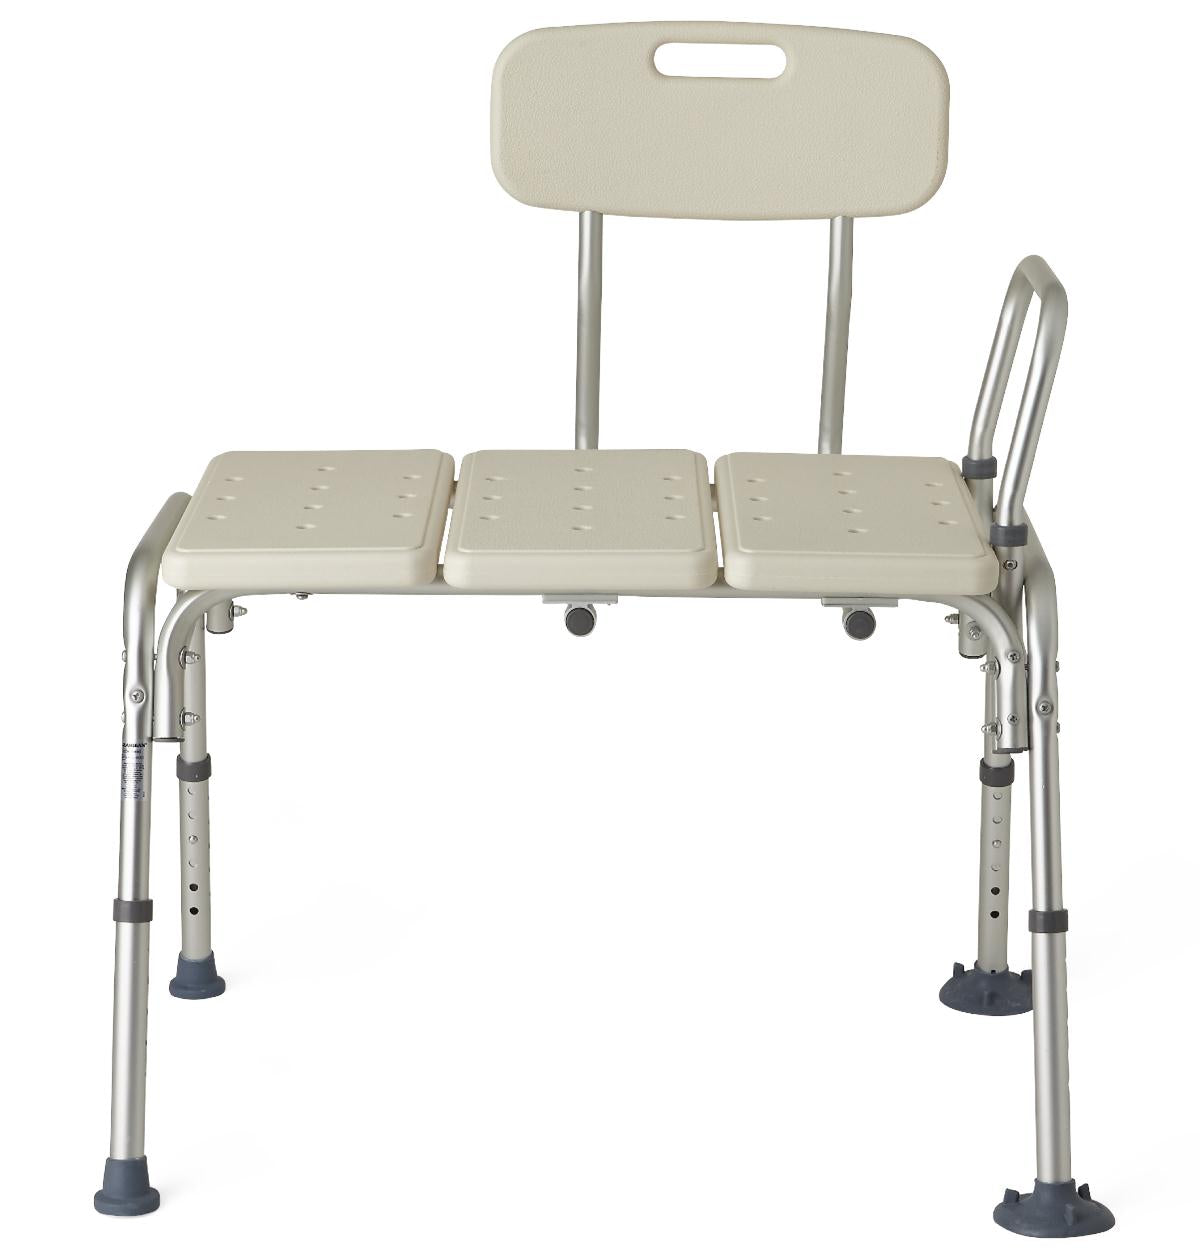 Medline Guardian Transfer Bench with Back at Meridian Medical Supply